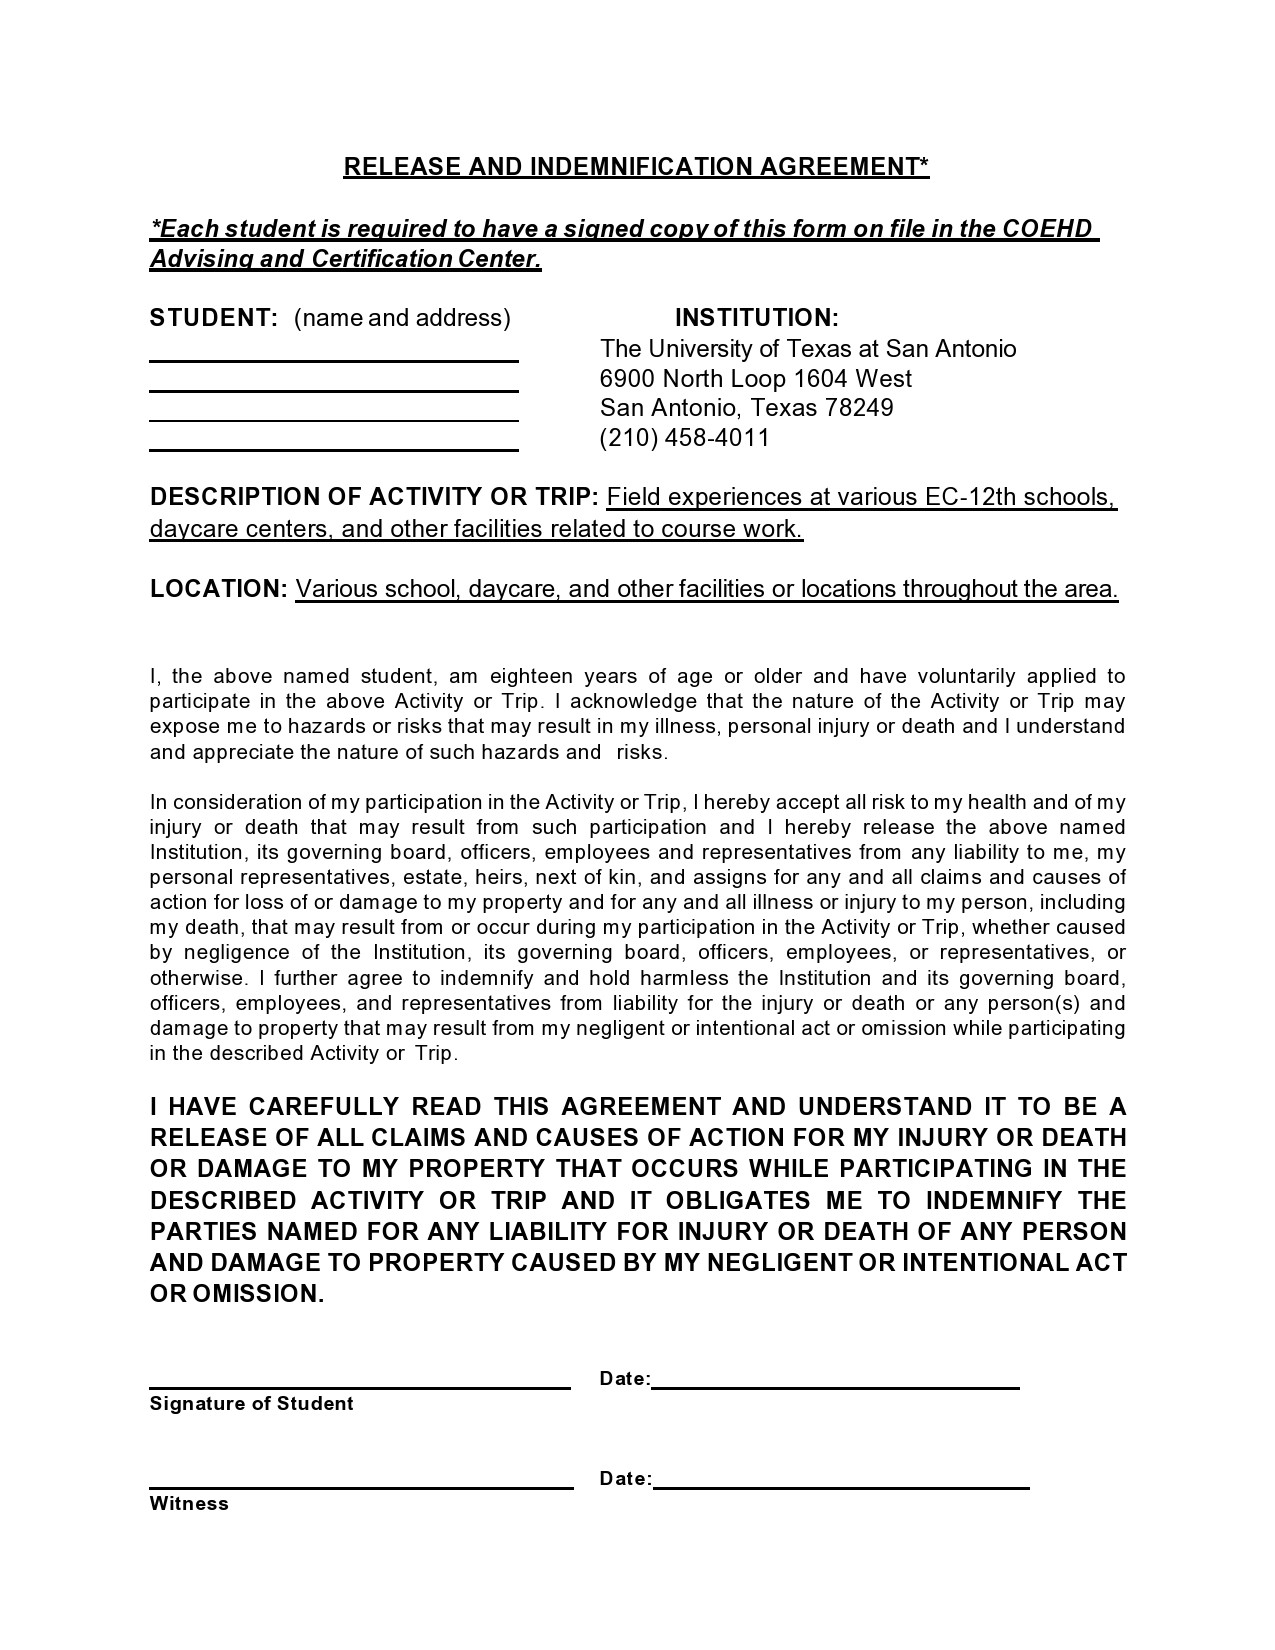 Free indemnification agreement 40